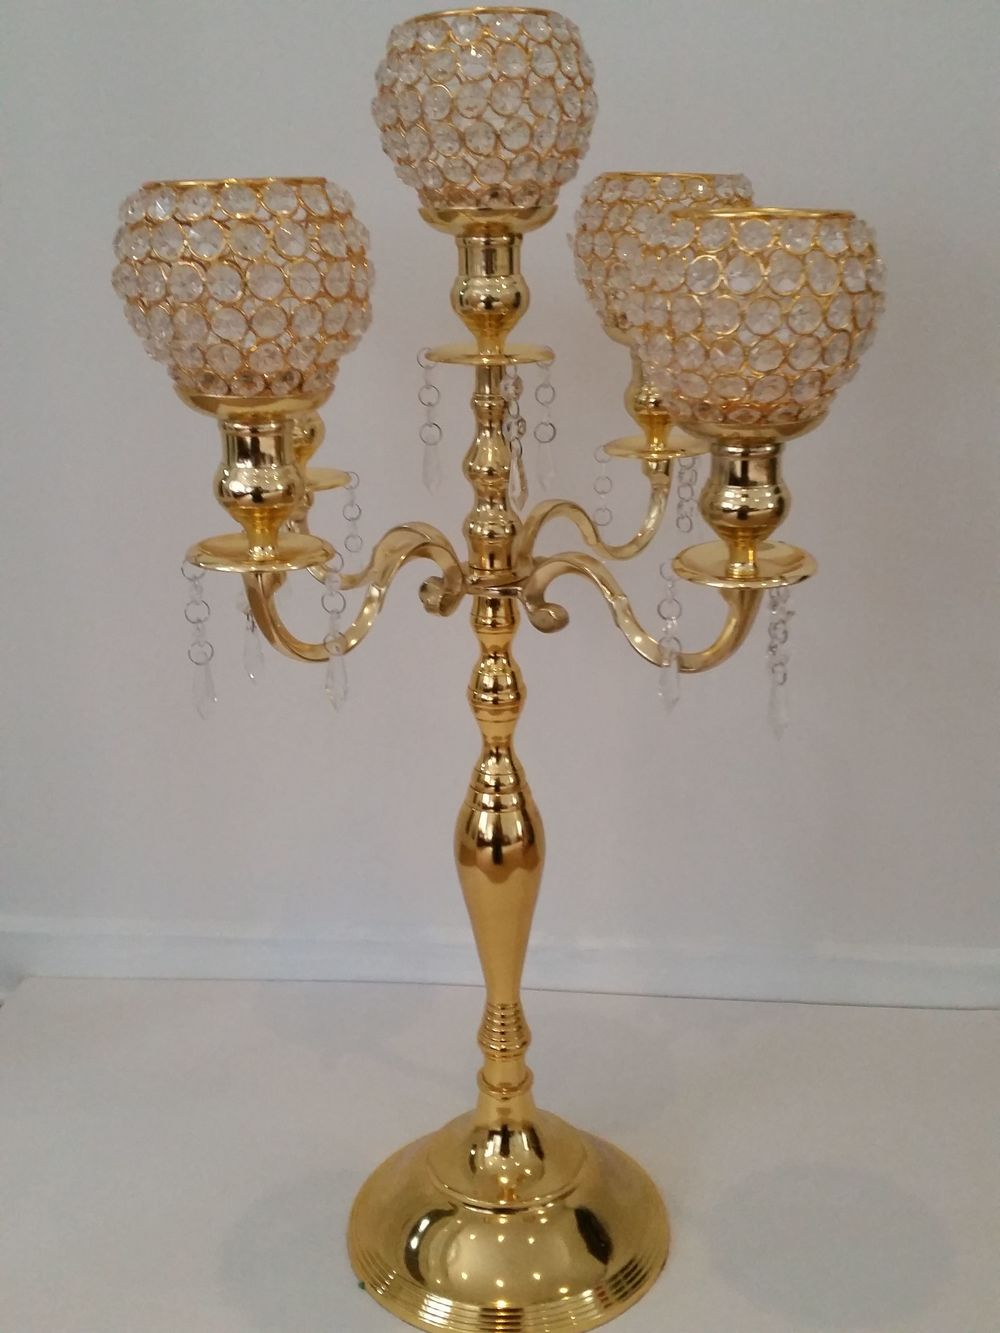 Gold 75cm Crystal Globe Candelabras with crystals6.jpg